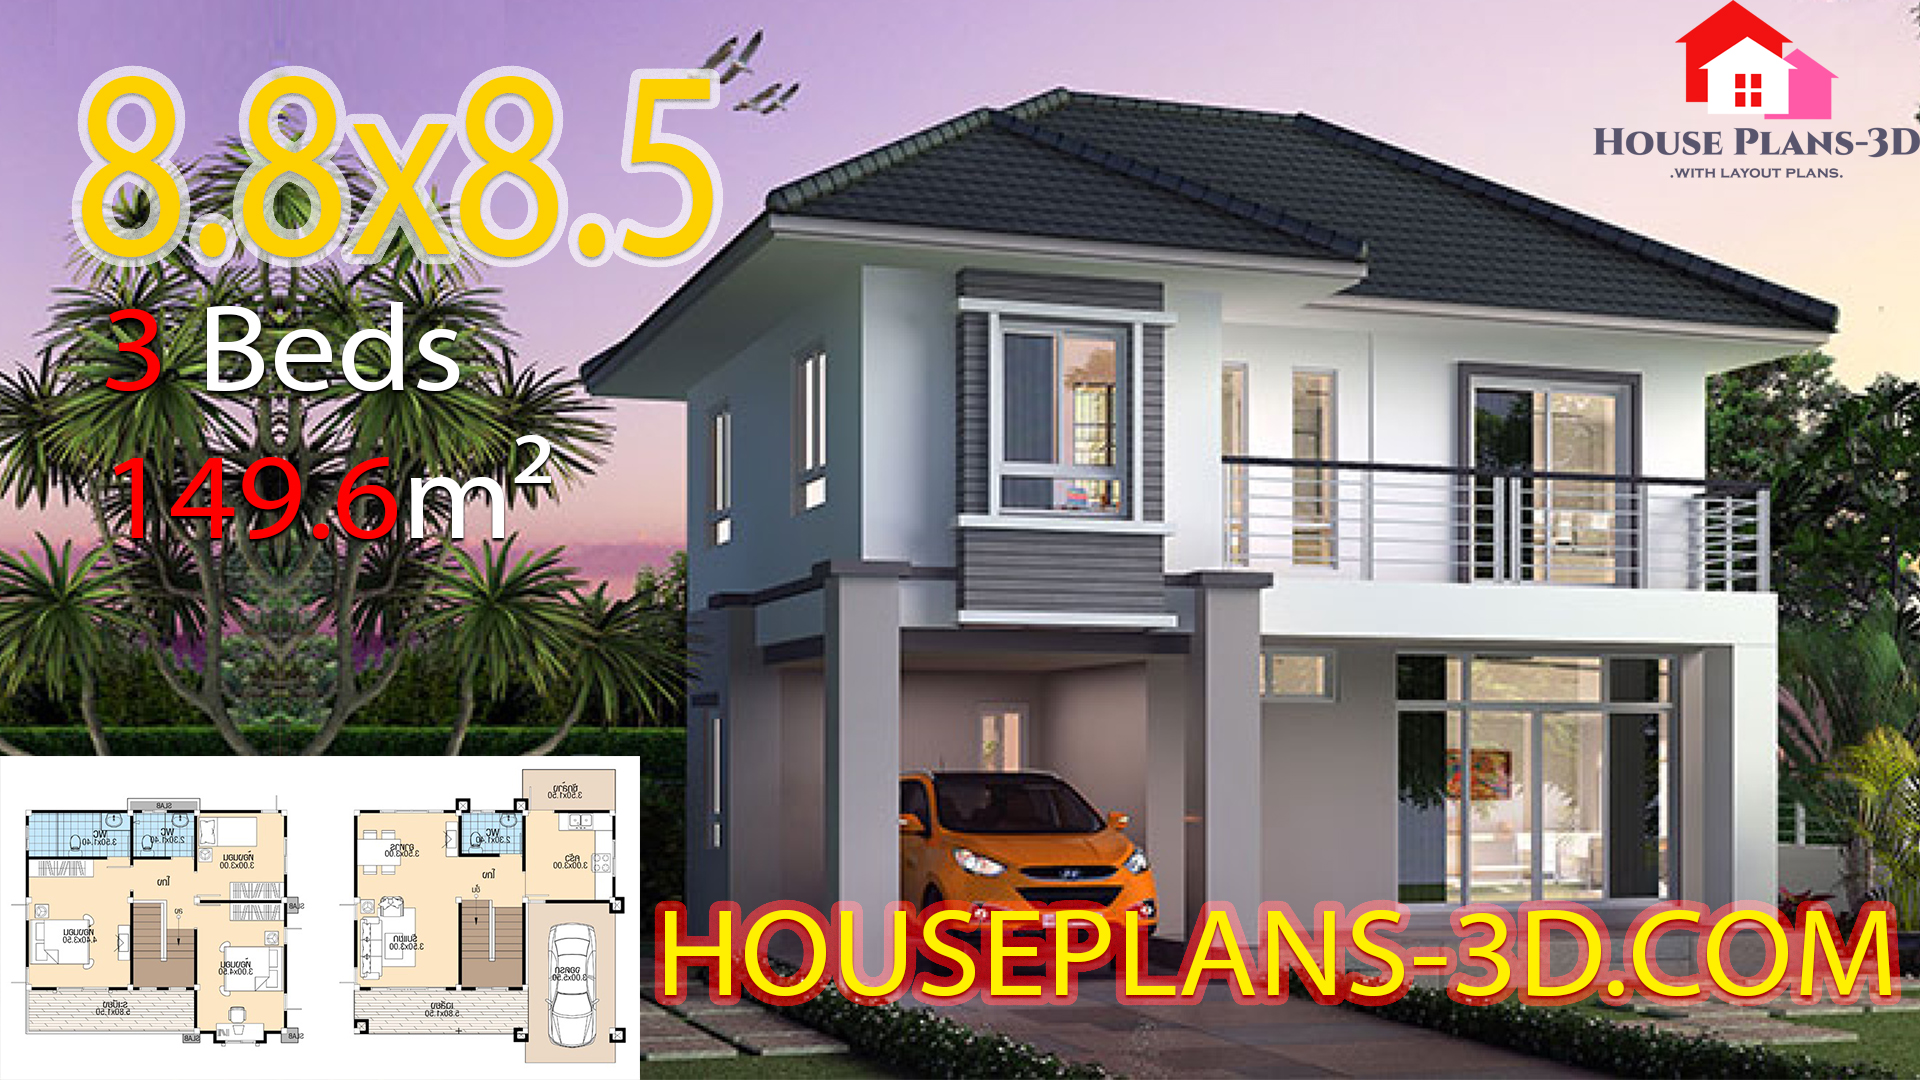 House design 8.8×8.5 with 3 Bedrooms